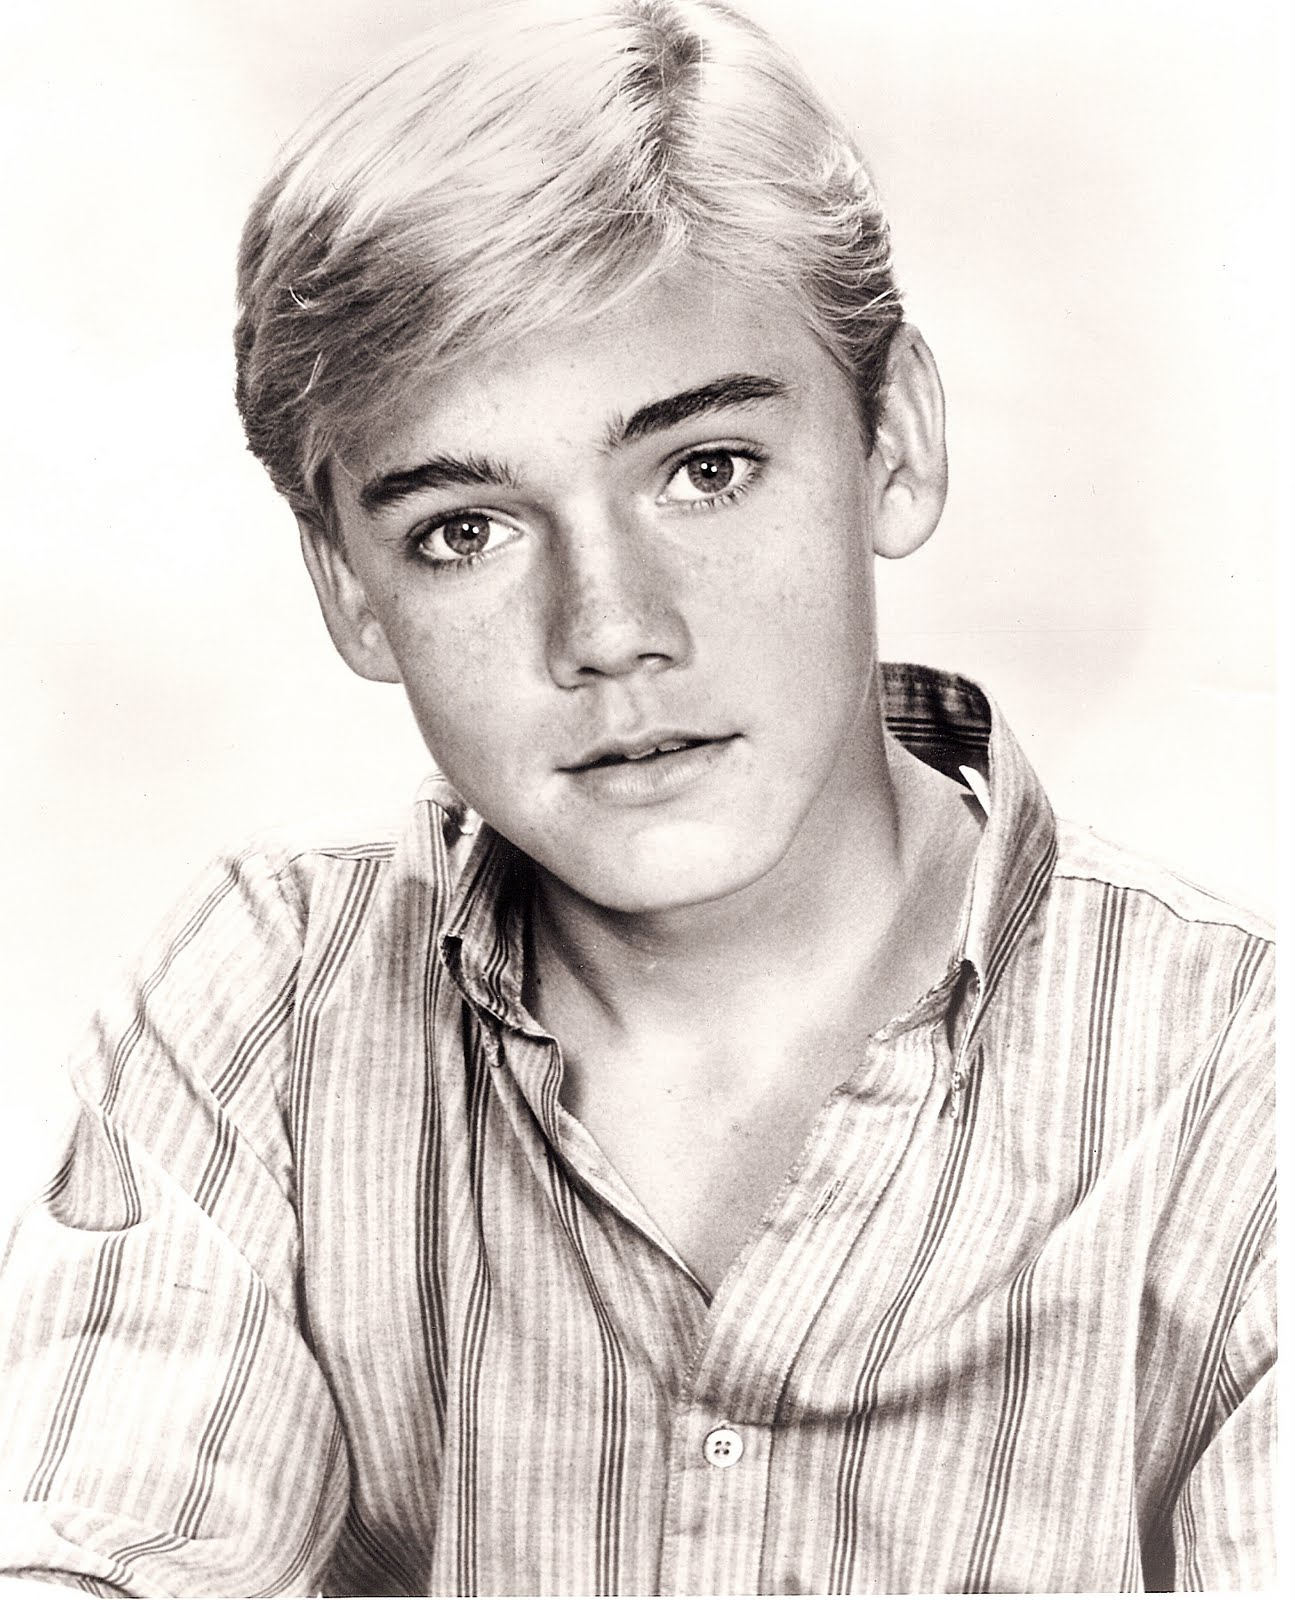 sc00469b33 At 14years old you were every teenage girls dream boat including mine.